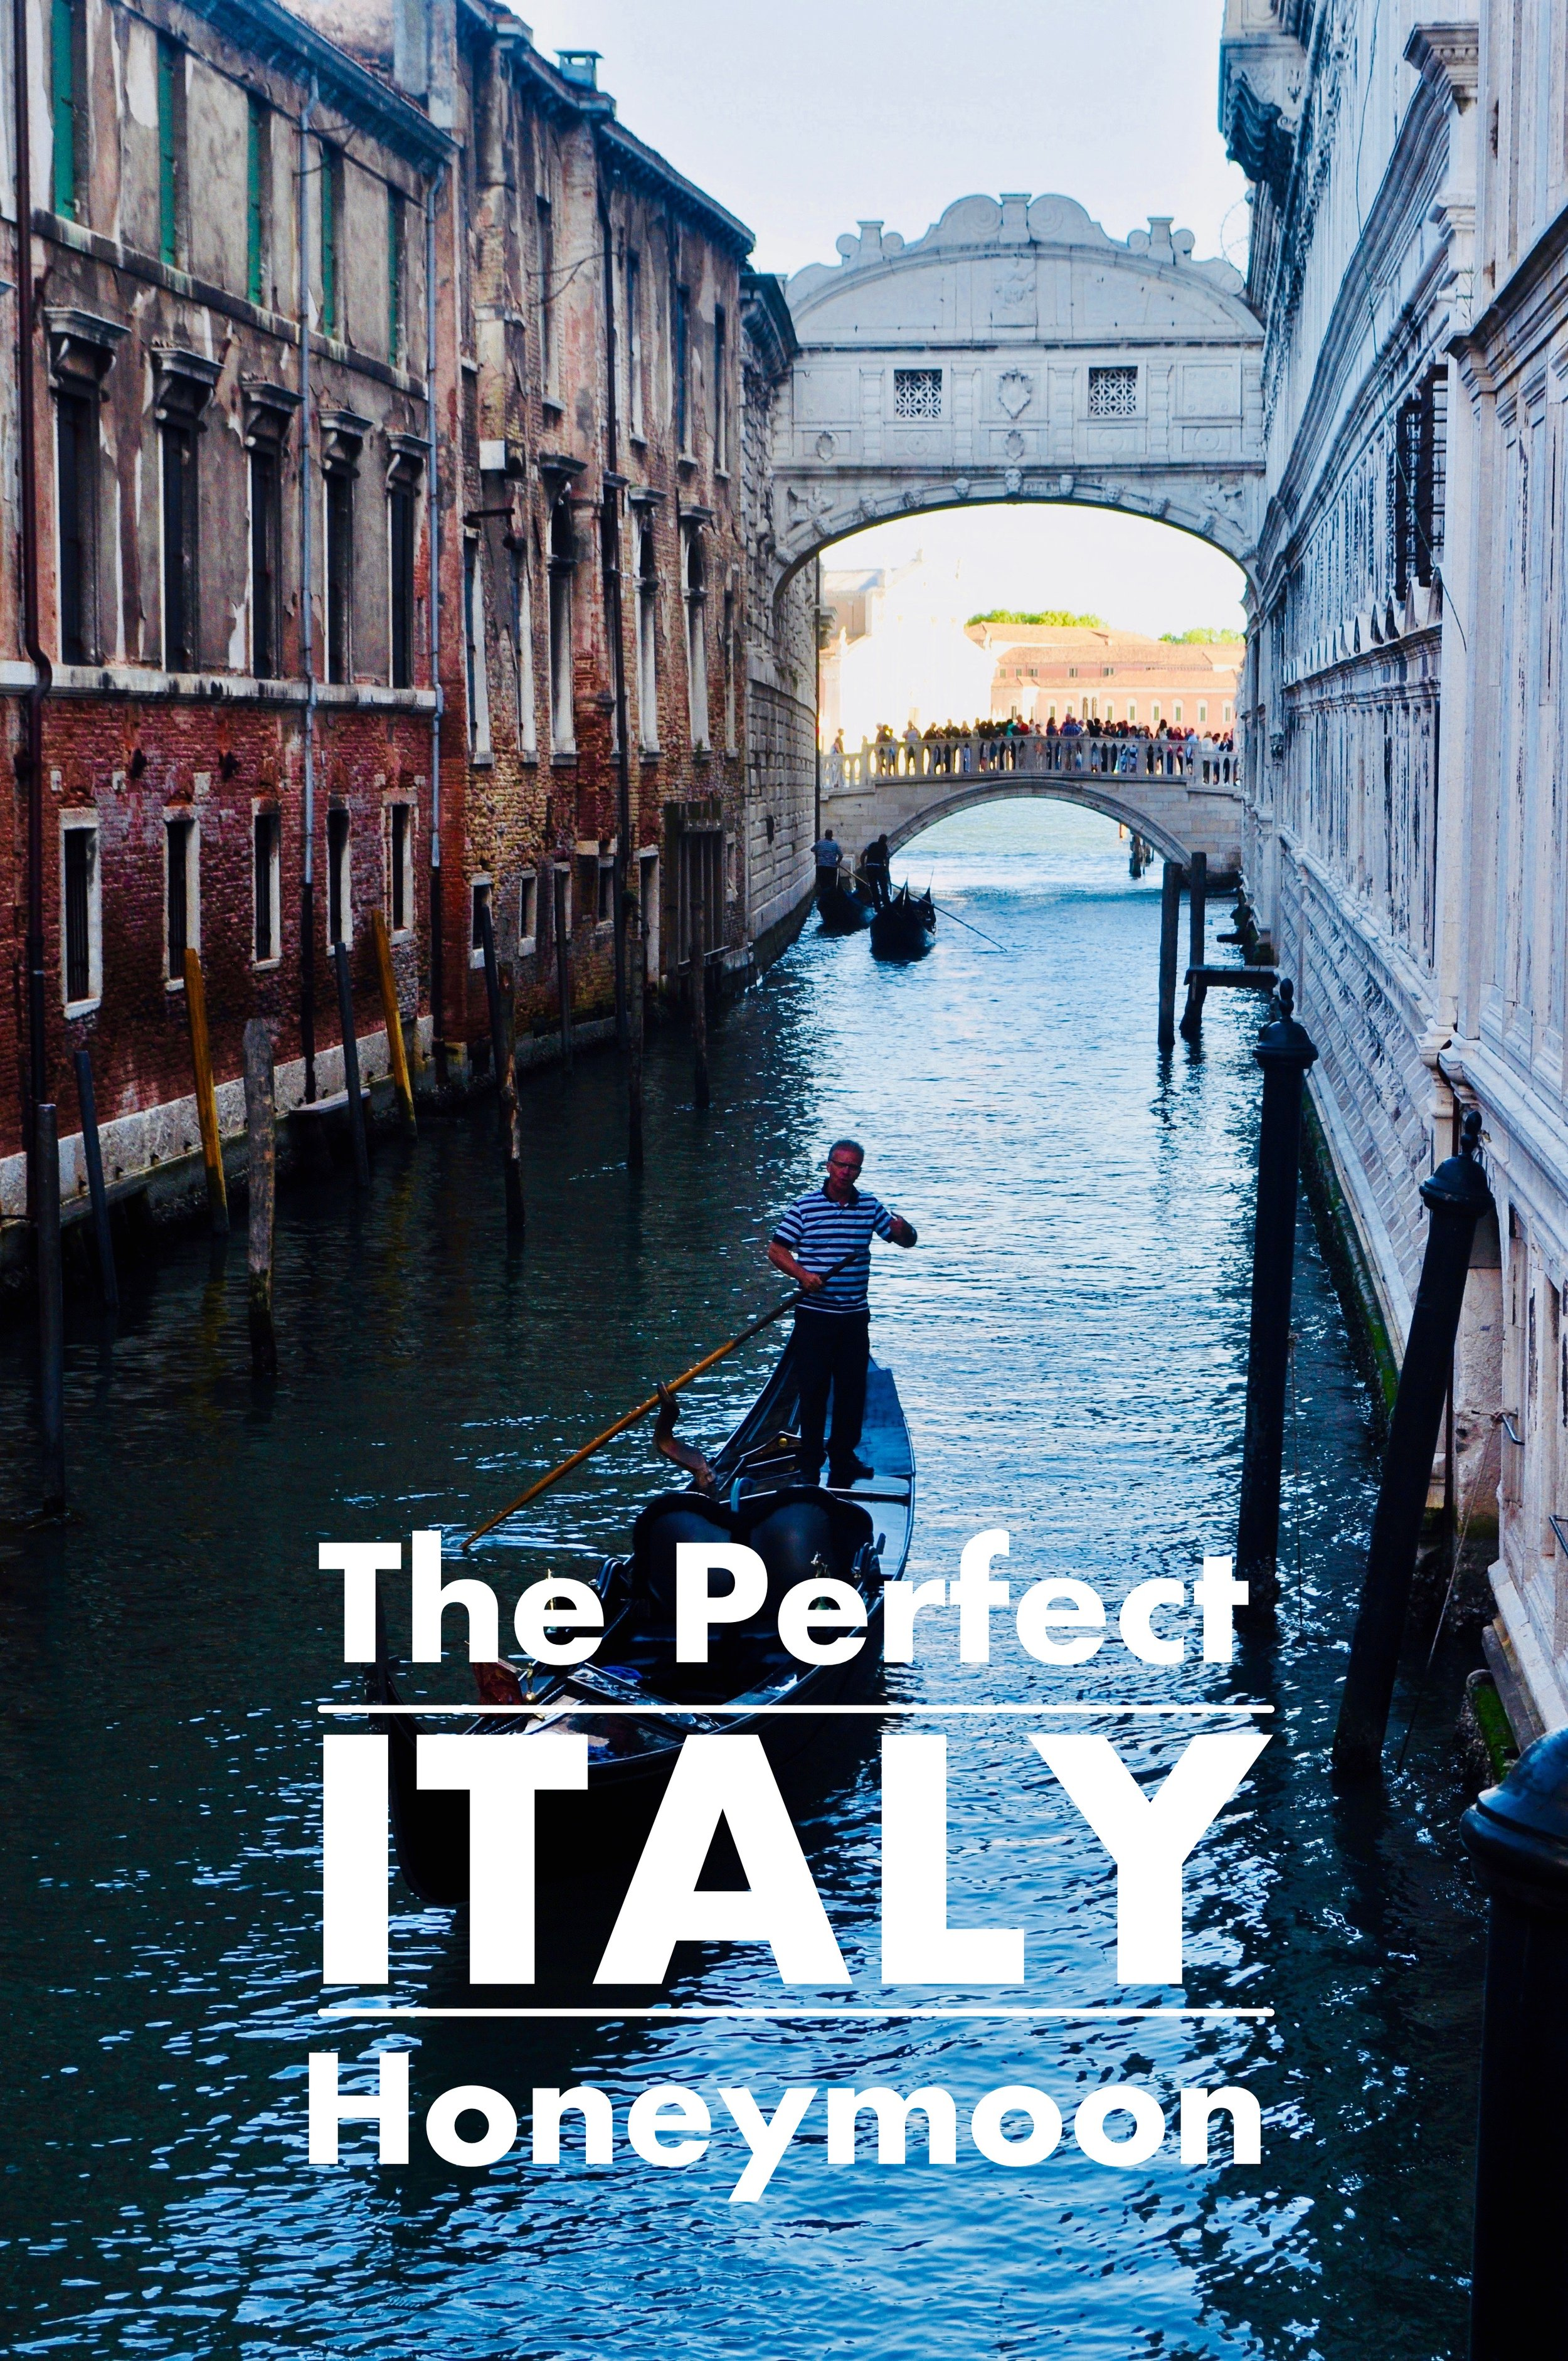 Our 8-Day Italy Honeymoon Itinerary - A Happy Passport.  Plan the perfect honeymoon in Italy that includes Venice, Florence, and Rome. #italy #honeymoon #rome #venice #florence